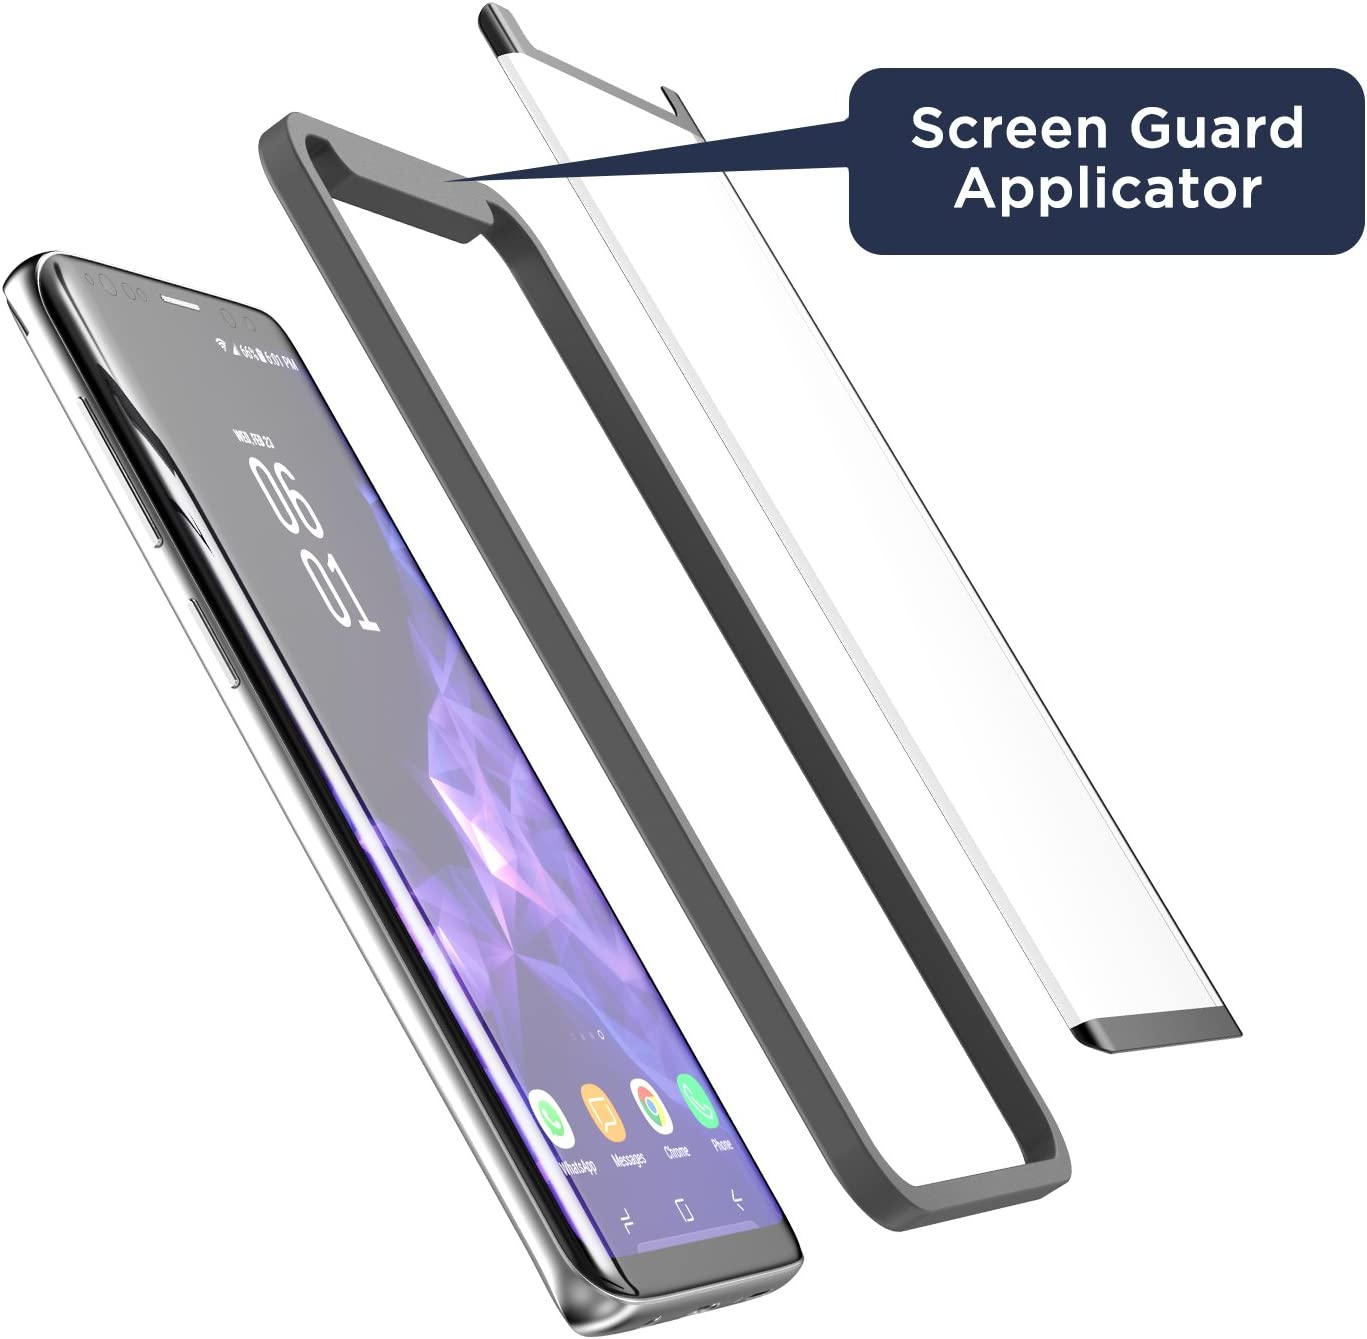 upscreen Reflection Shield Matte Screen Protector for Motorola MC909X-K Multitouch Optimized Strong Scratch Protection Matte and Anti-Glare